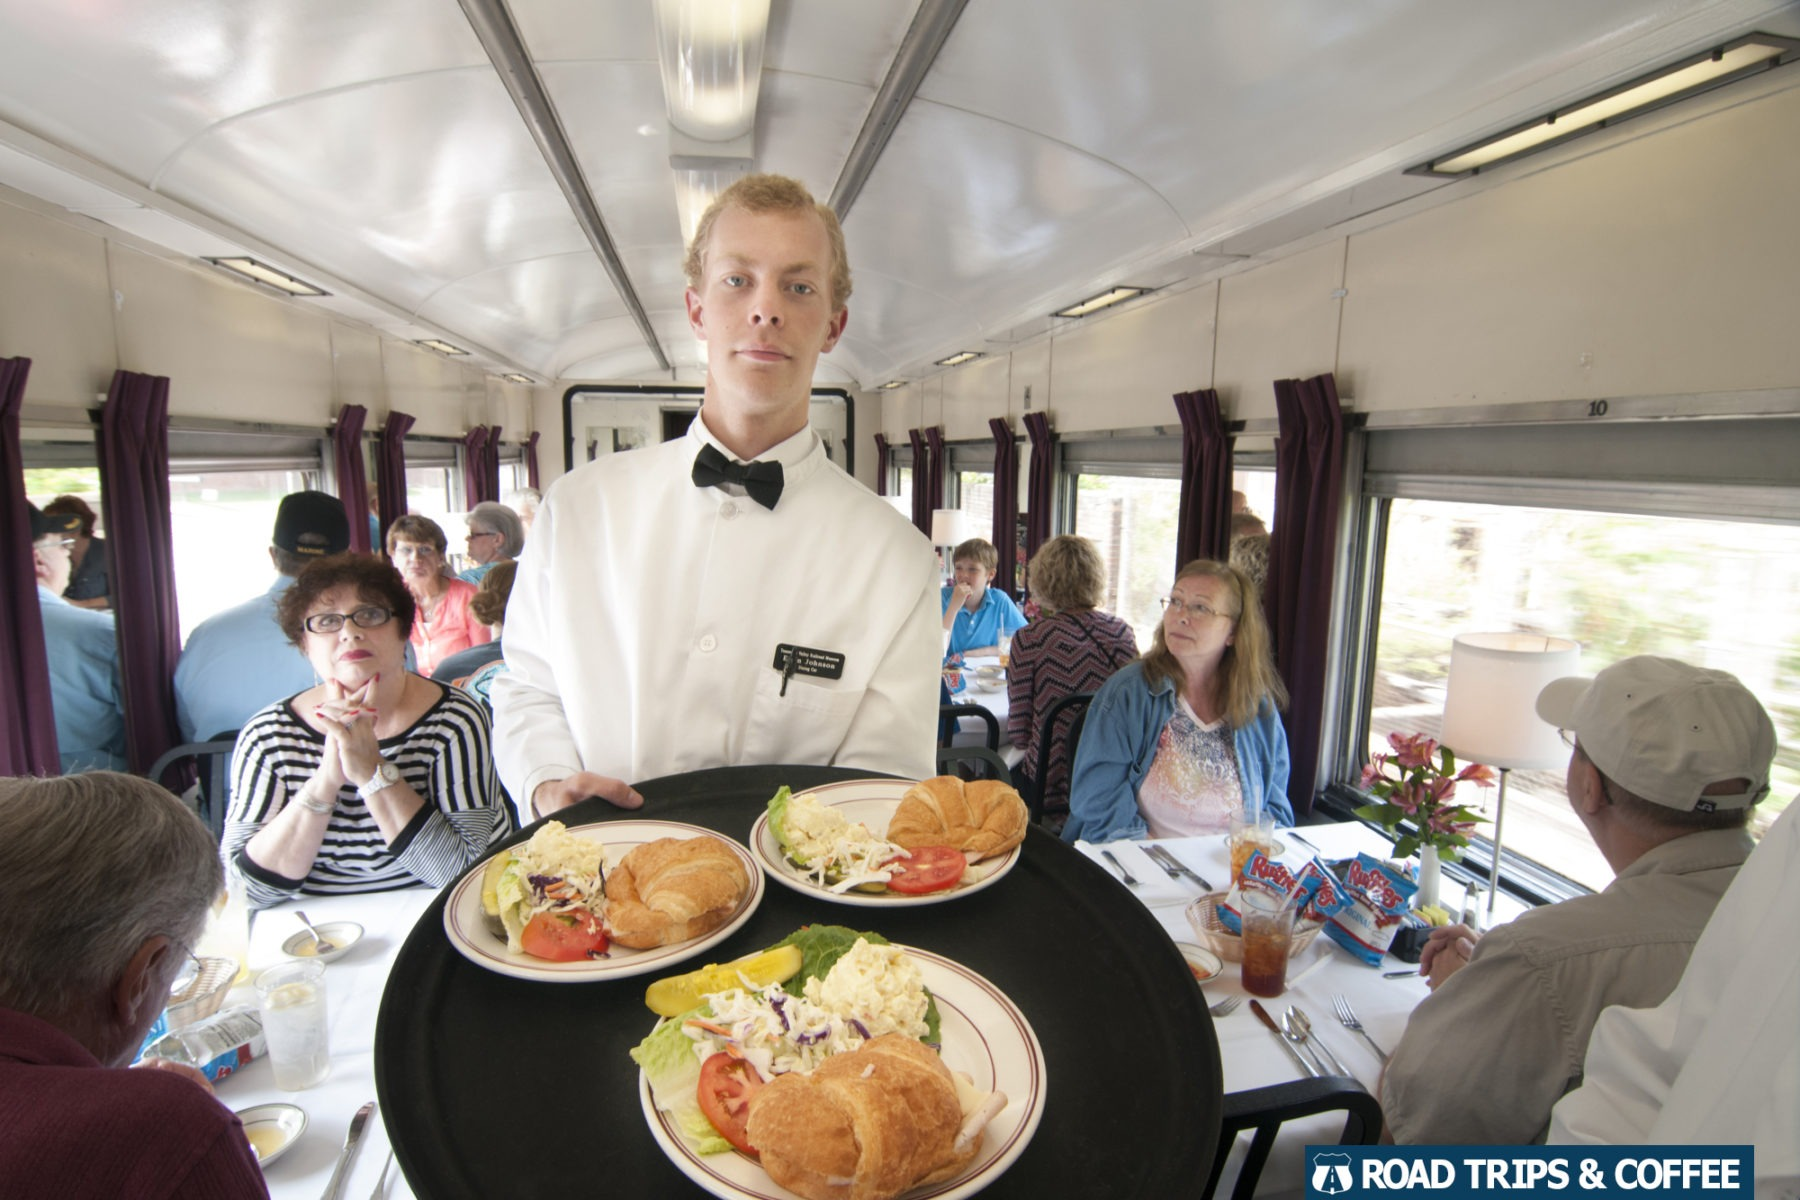 A tray of food during a rain ride with the Tennessee Valley Railroad Museum in Chattanooga, Tennessee